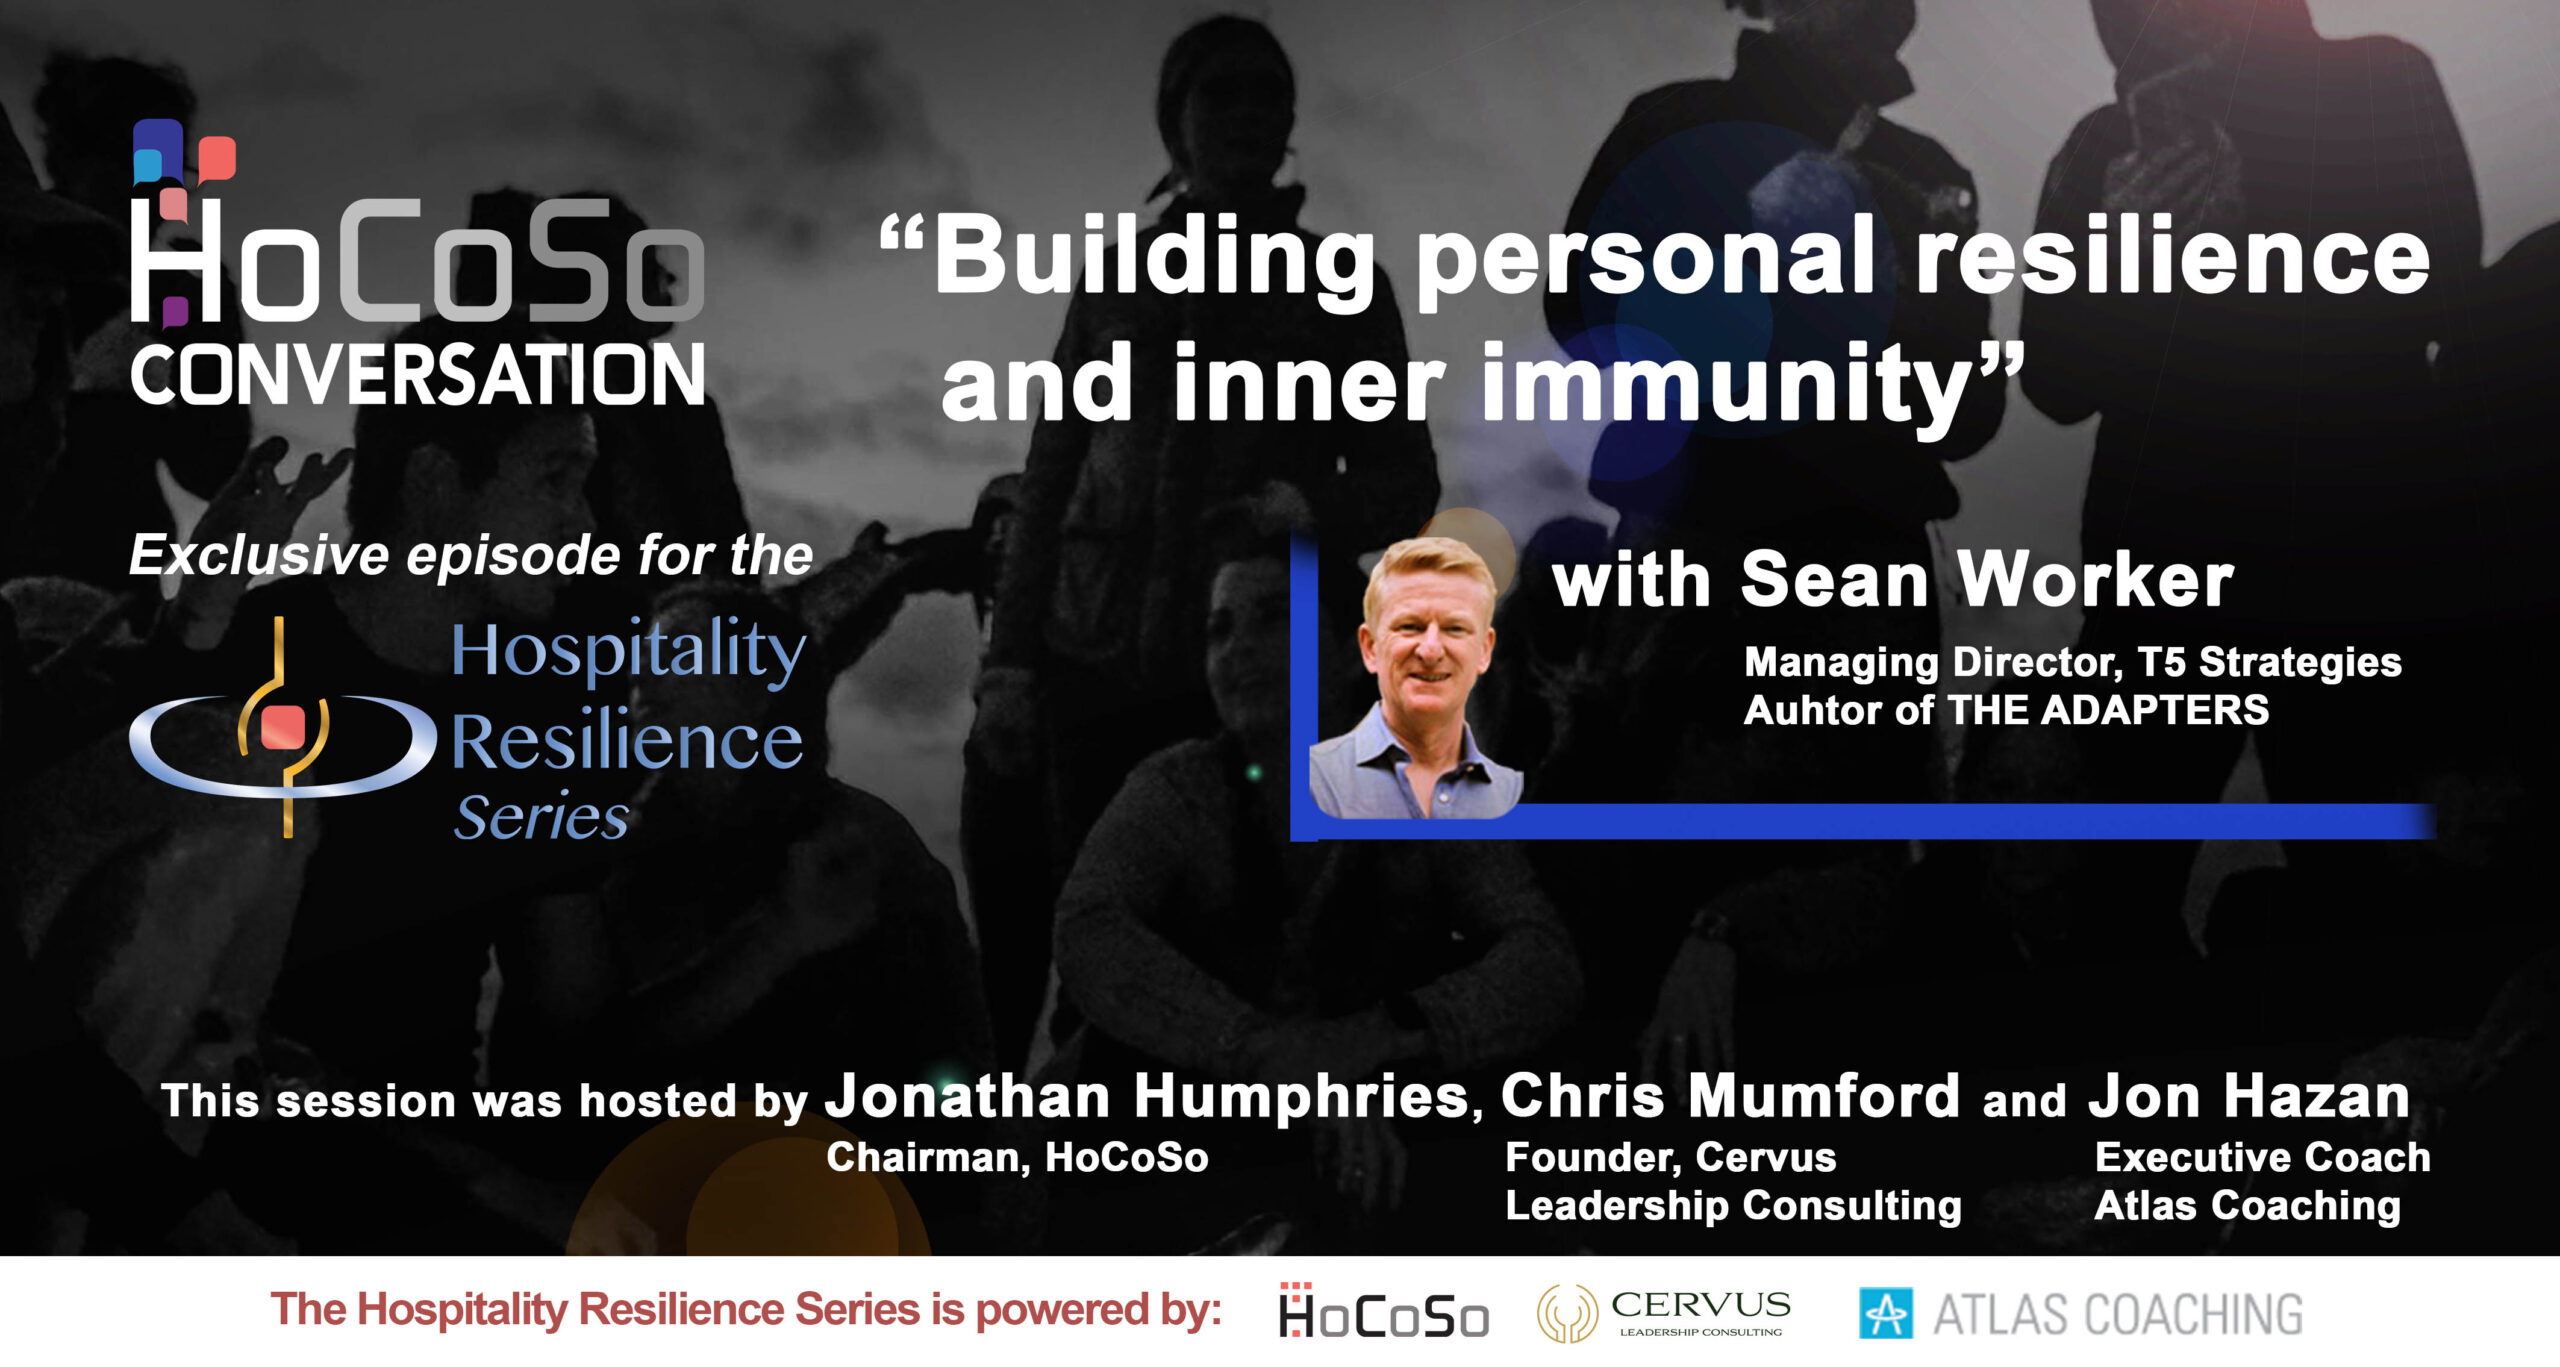 Building Personal Resilience and Inner Immunity - Exclusive episode for the Hospitality Resilience Series by HoCoSo CONVERSATION